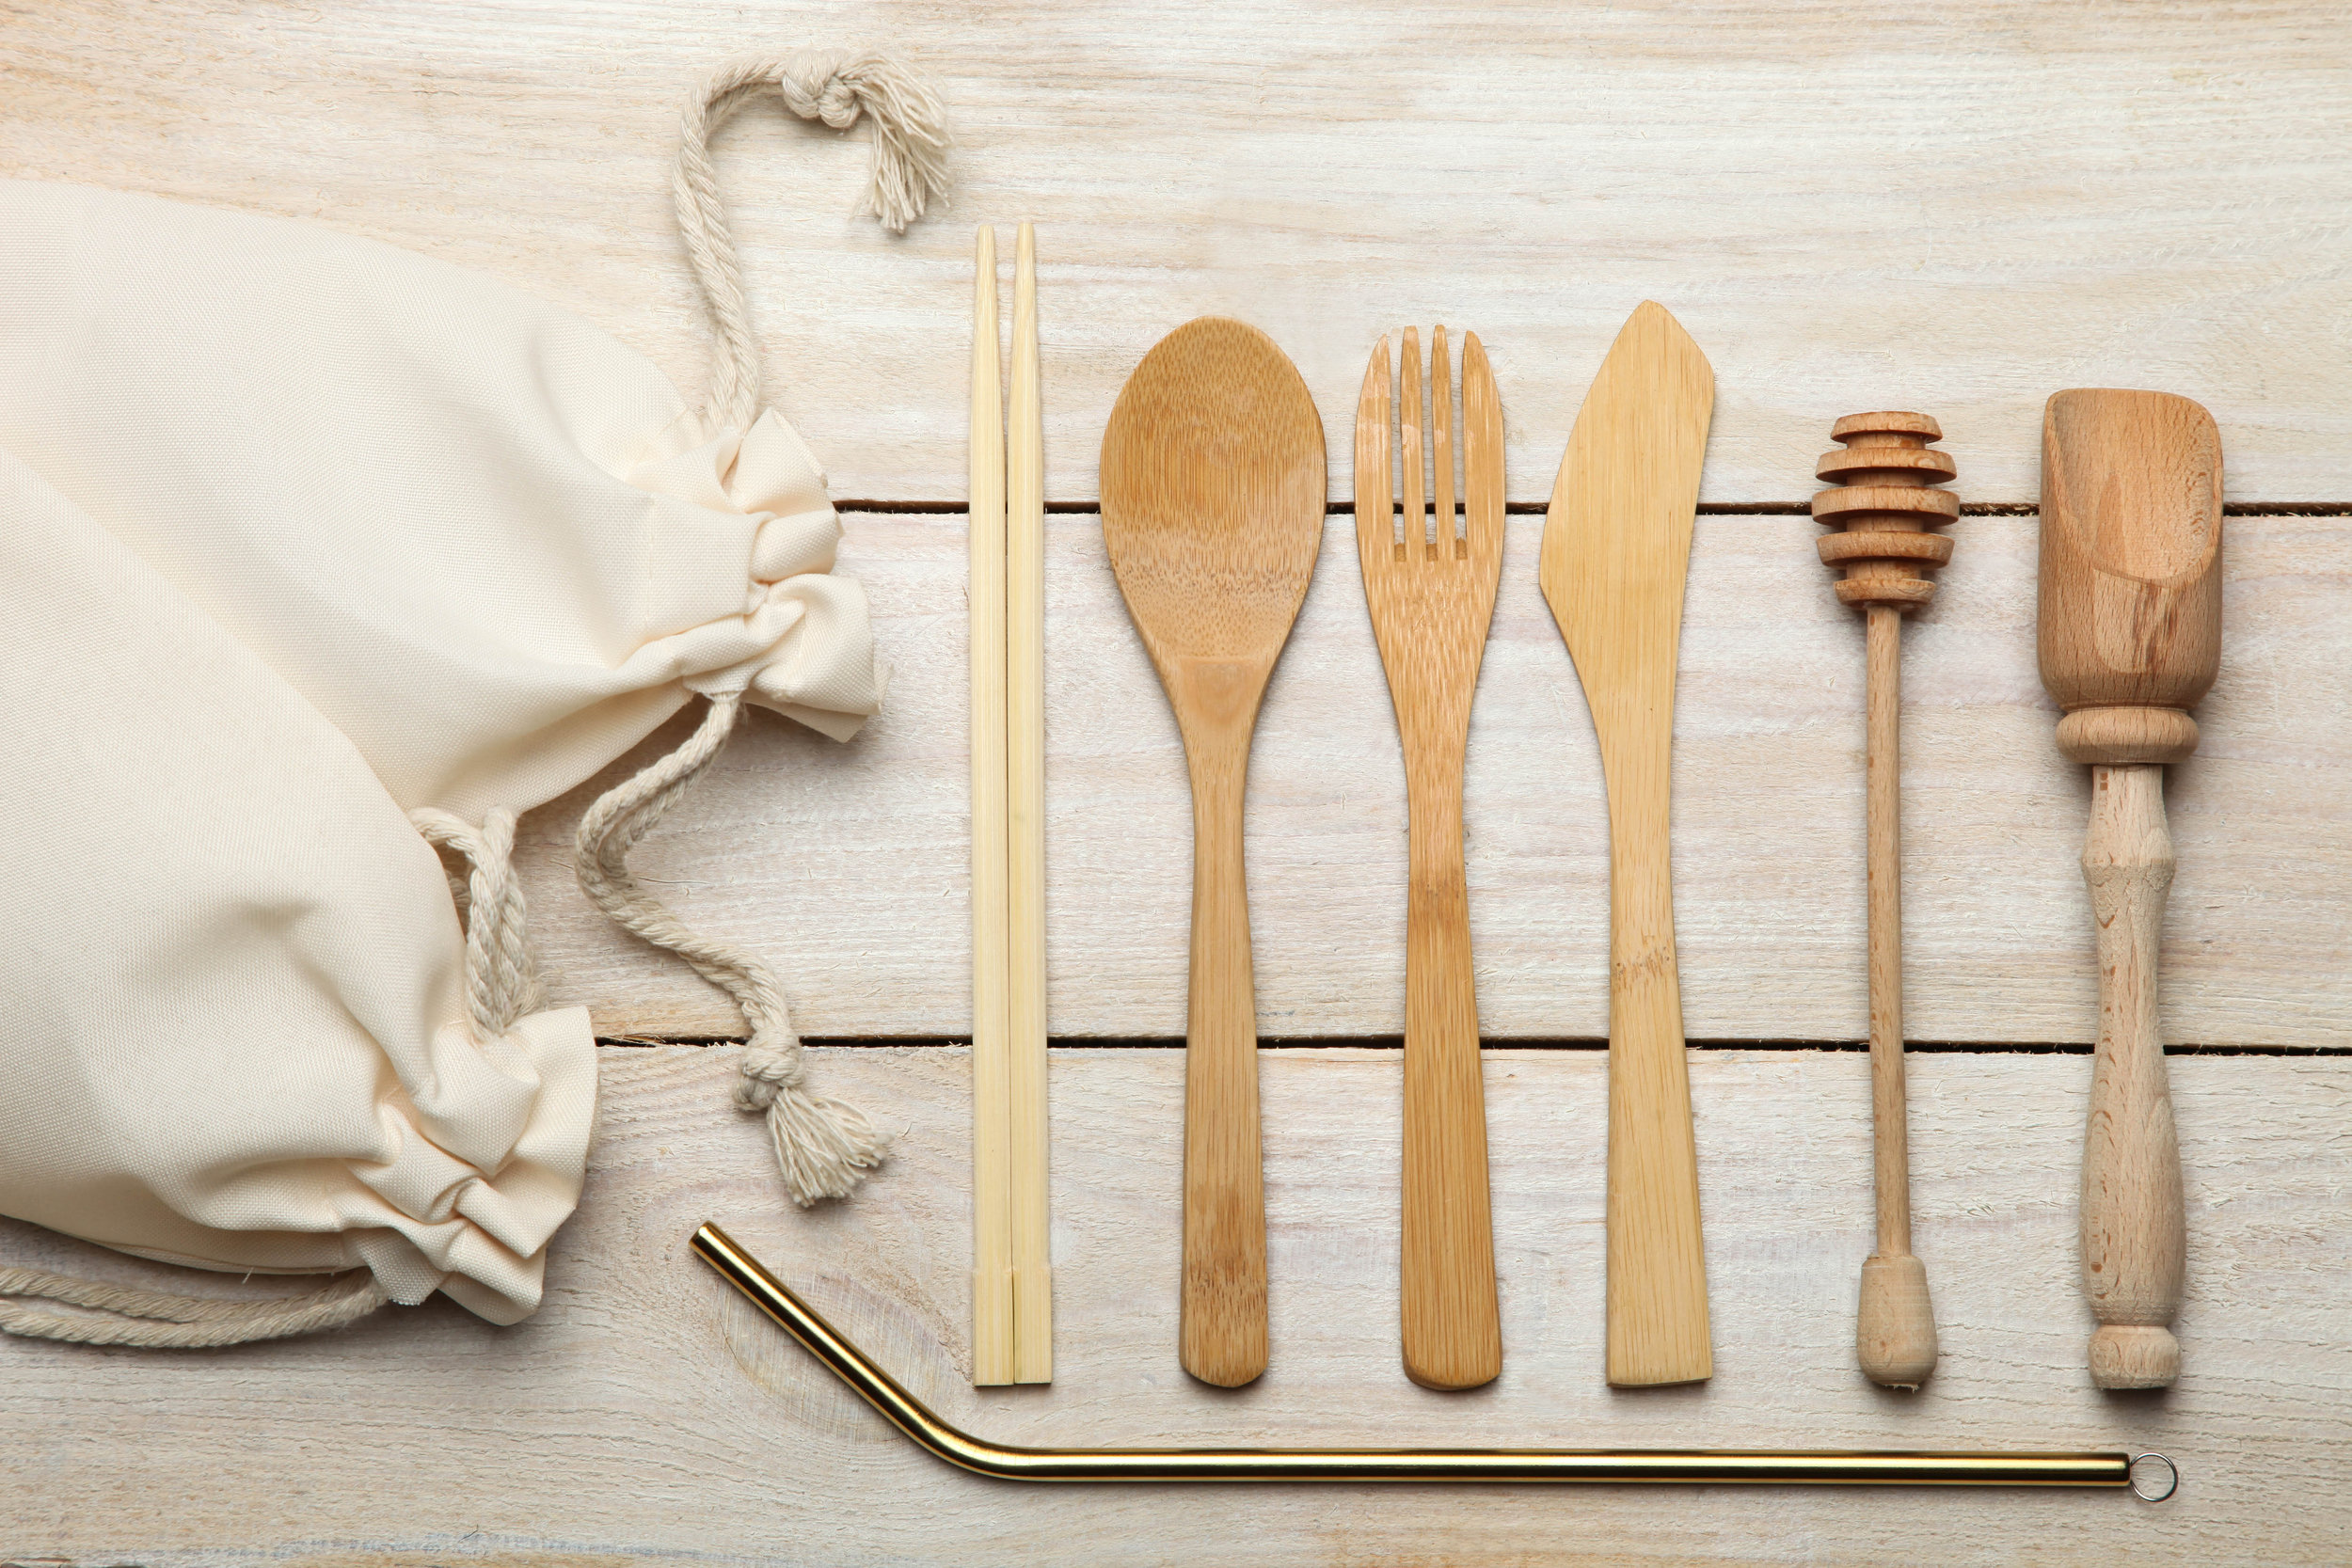 Sporks and straws - Used only for a few moments, your single use fork, knife or spoon can take over 200 years to decompose! Why not try a spork or if you're feeling fancy how about a metal straw for enjoying drinks when you're out? Check out these washable bamboo wonders and find the perfect straw for you here.